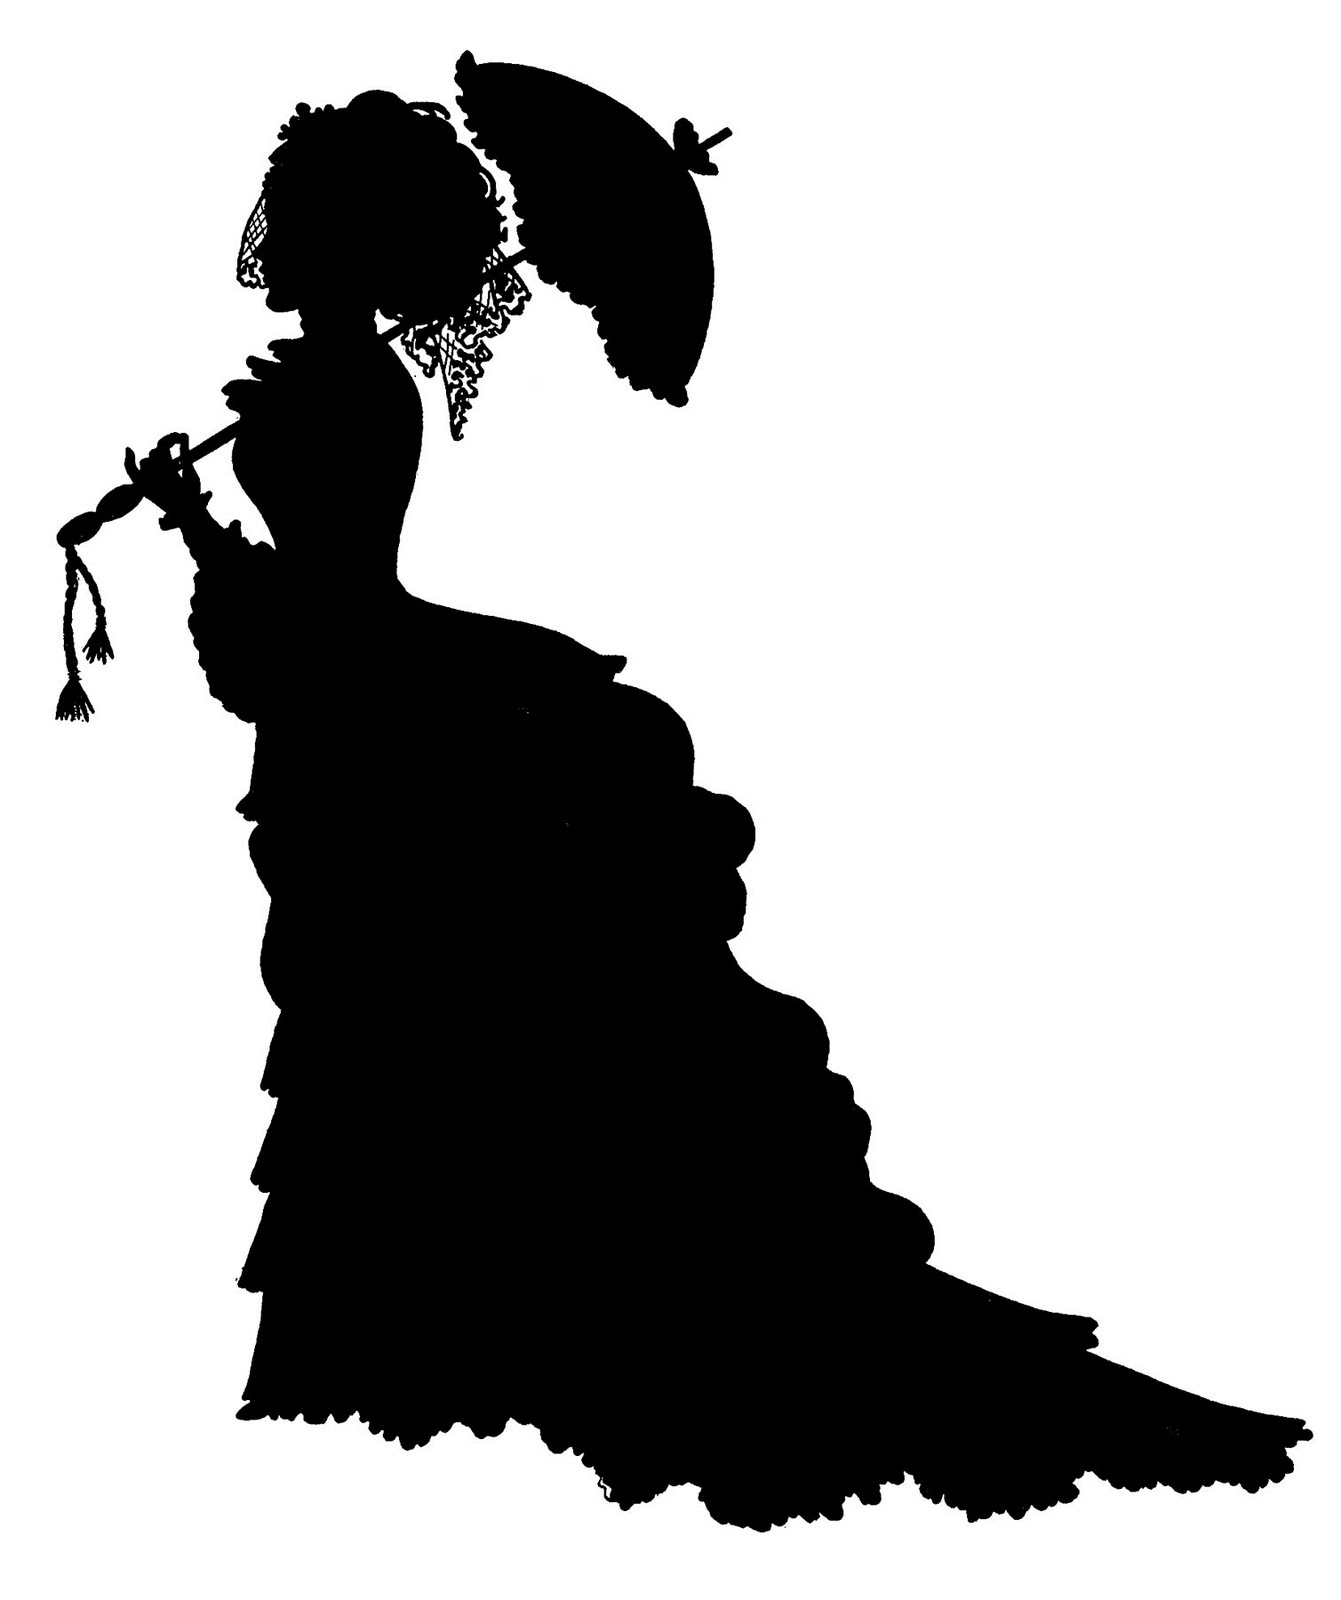 Mixed Media : Silhouette-Statue Project